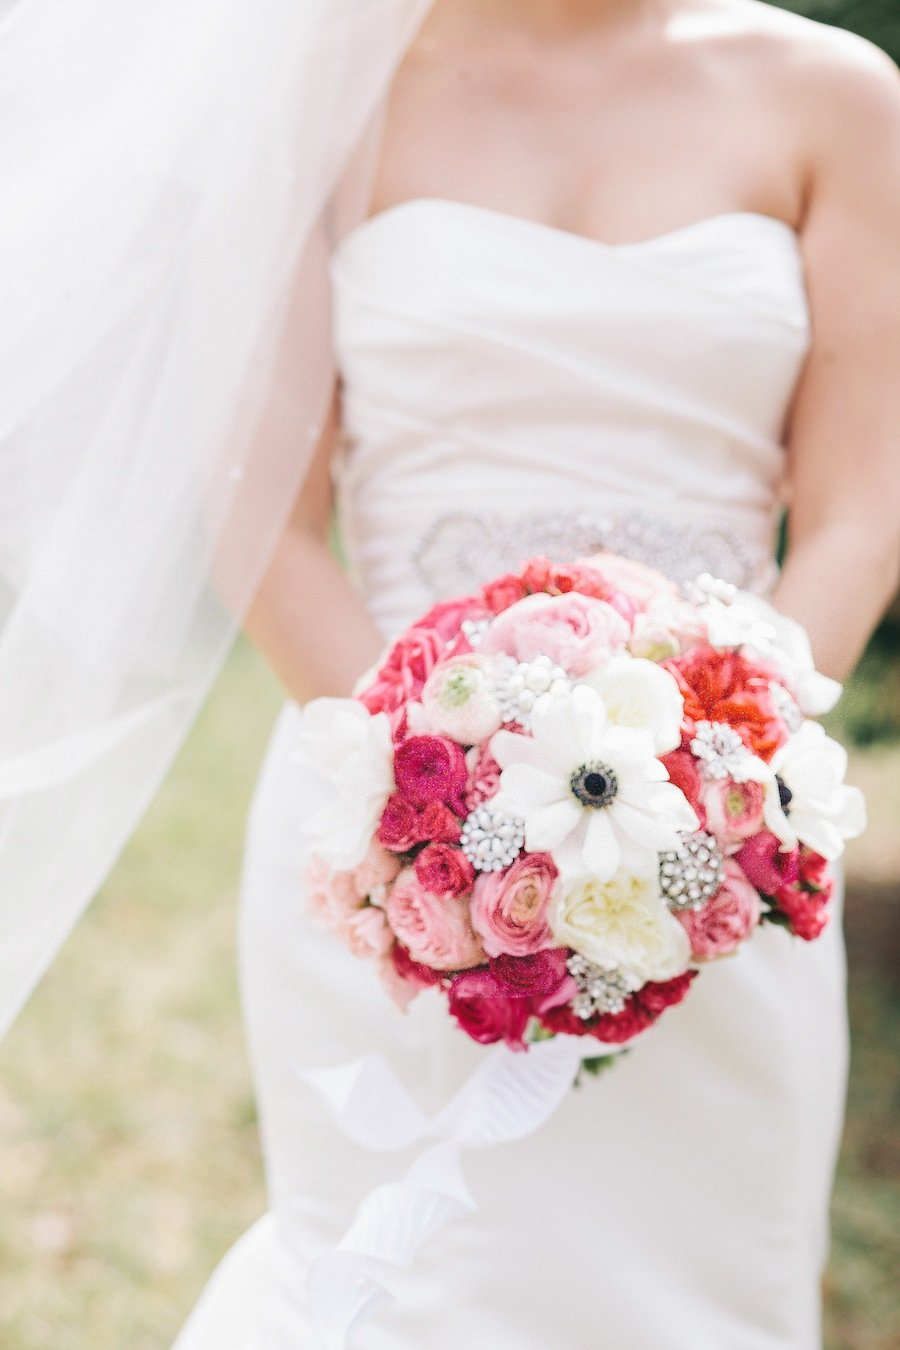 White Wedding Dress With Red Roses 17 Inspirational Margot Laporte trusted her